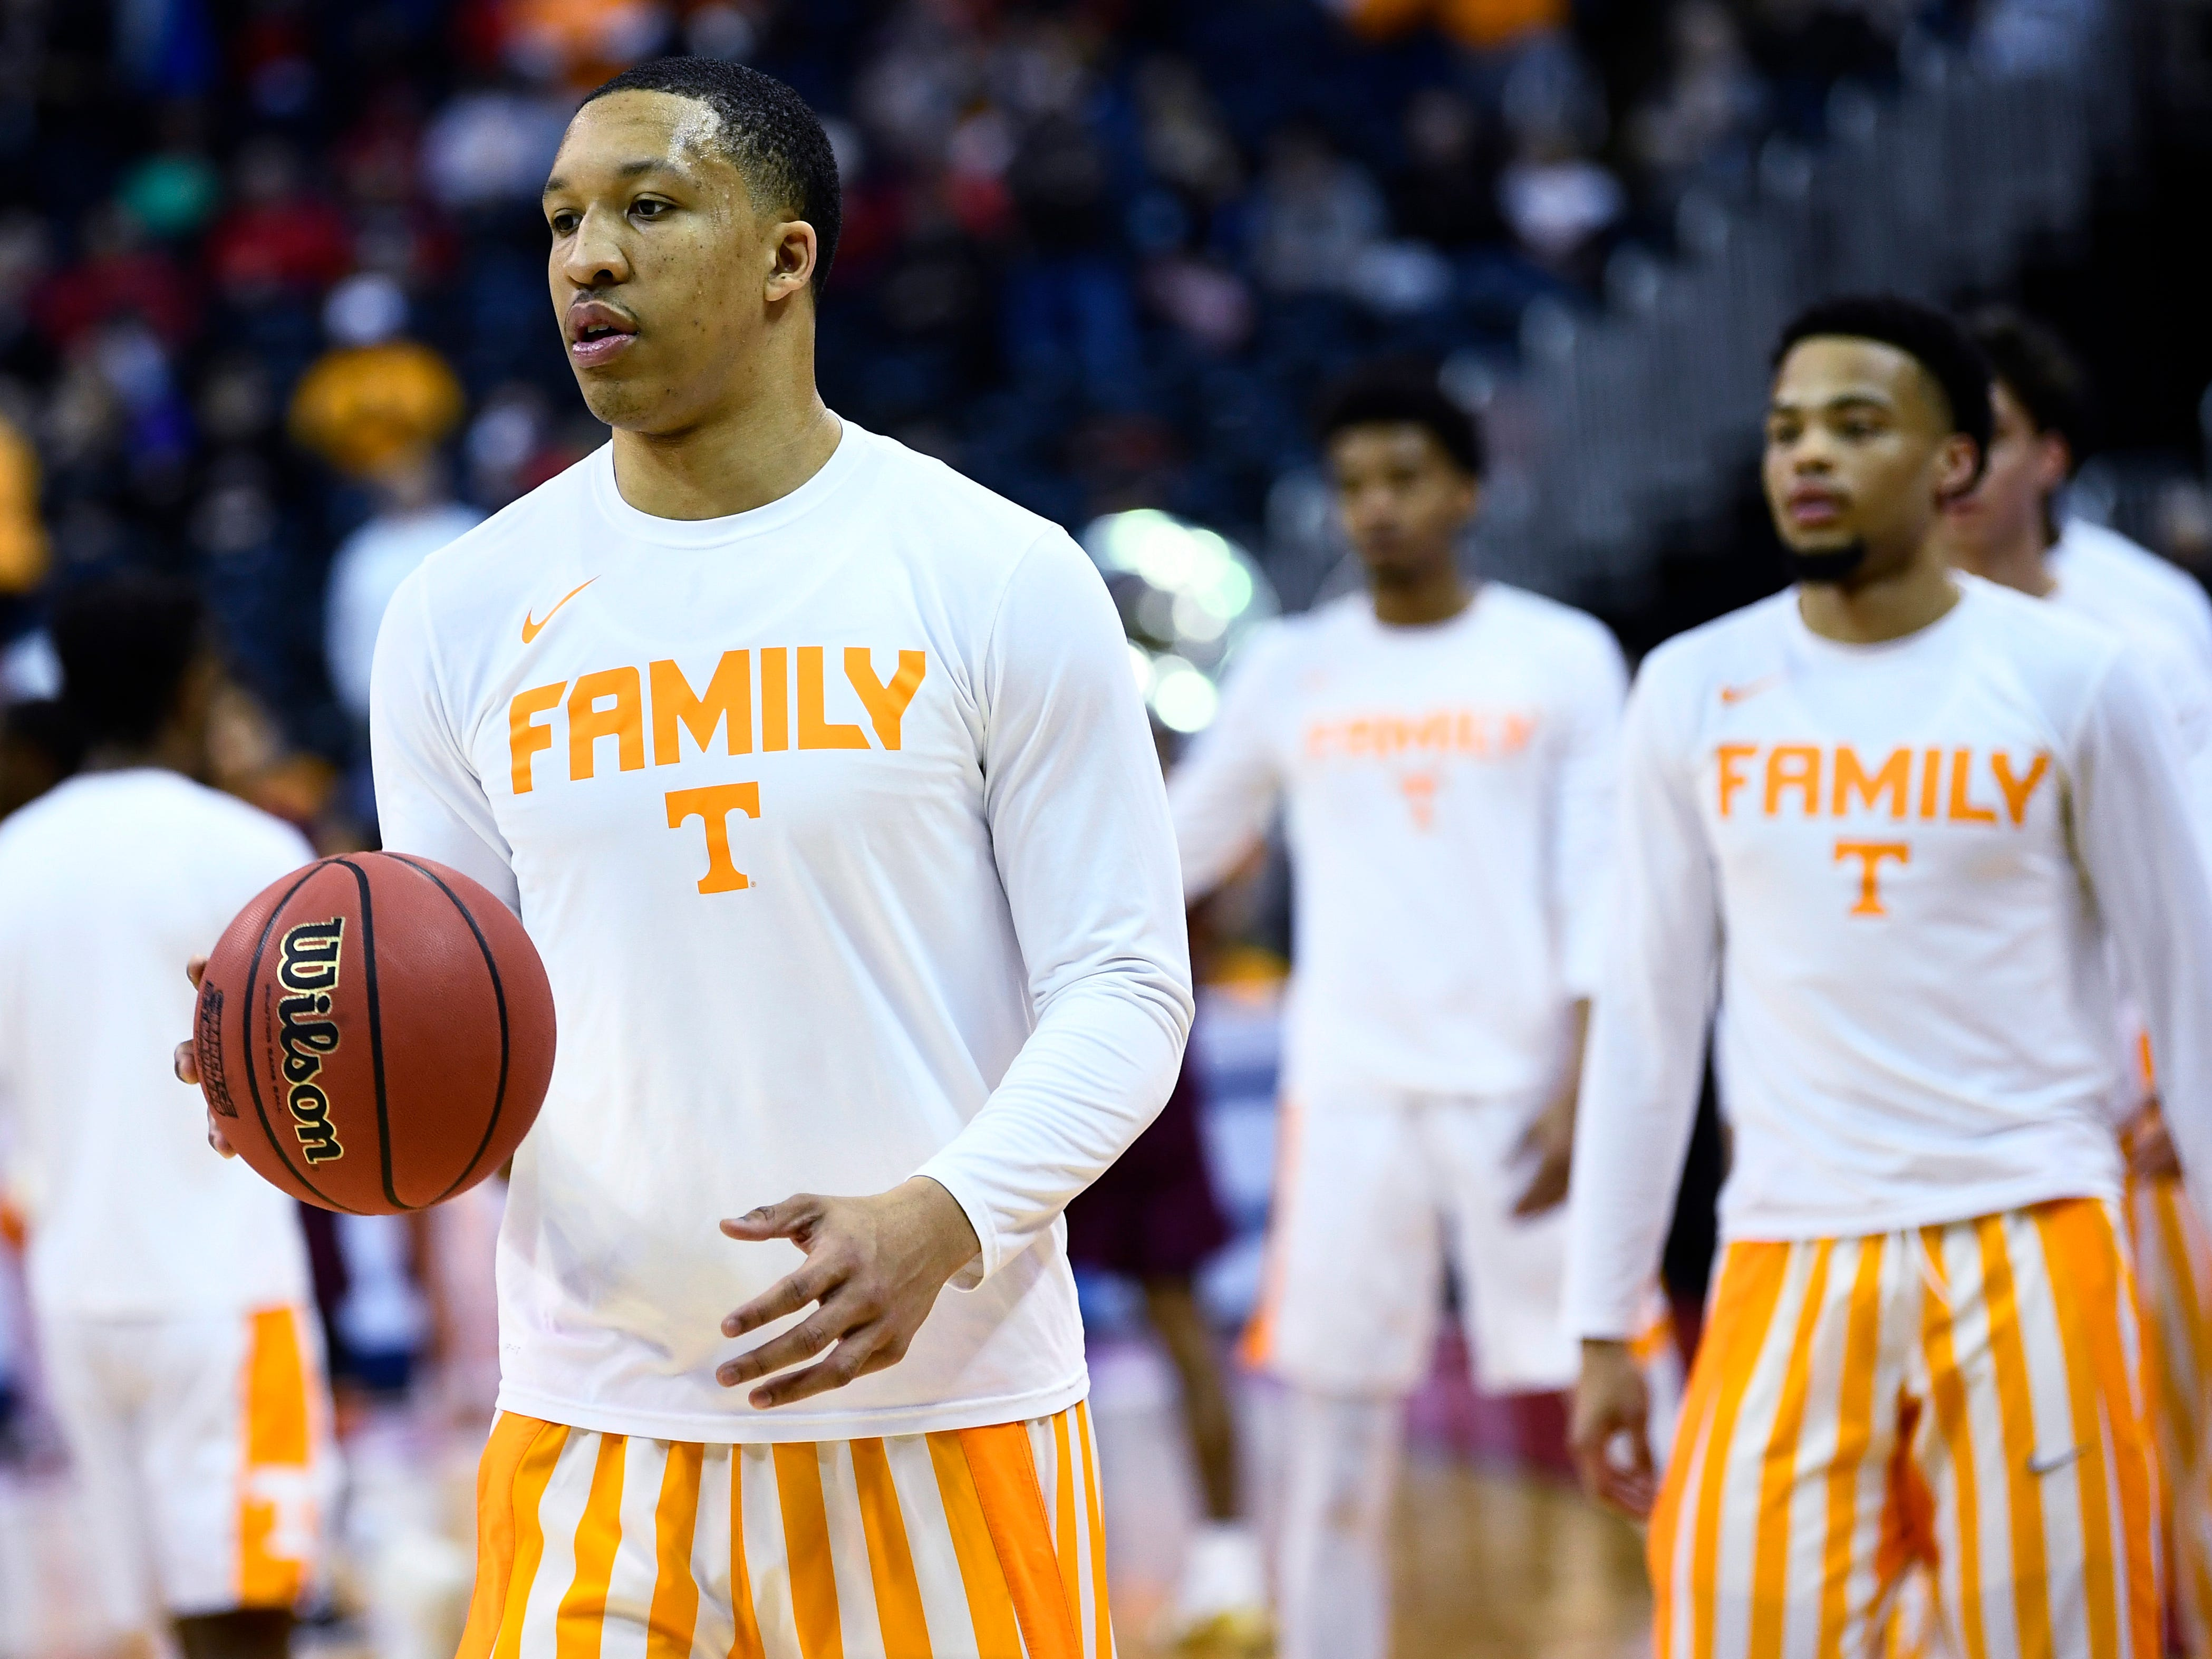 Tennessee forward Grant Williams (2) warms up with teammates before the Tennessee VolunteersÕ basketball game against the Colgate Raiders in the first round of the NCAA Tournament at Nationwide Arena in Columbus, Ohio, on Friday, March 22, 2019.